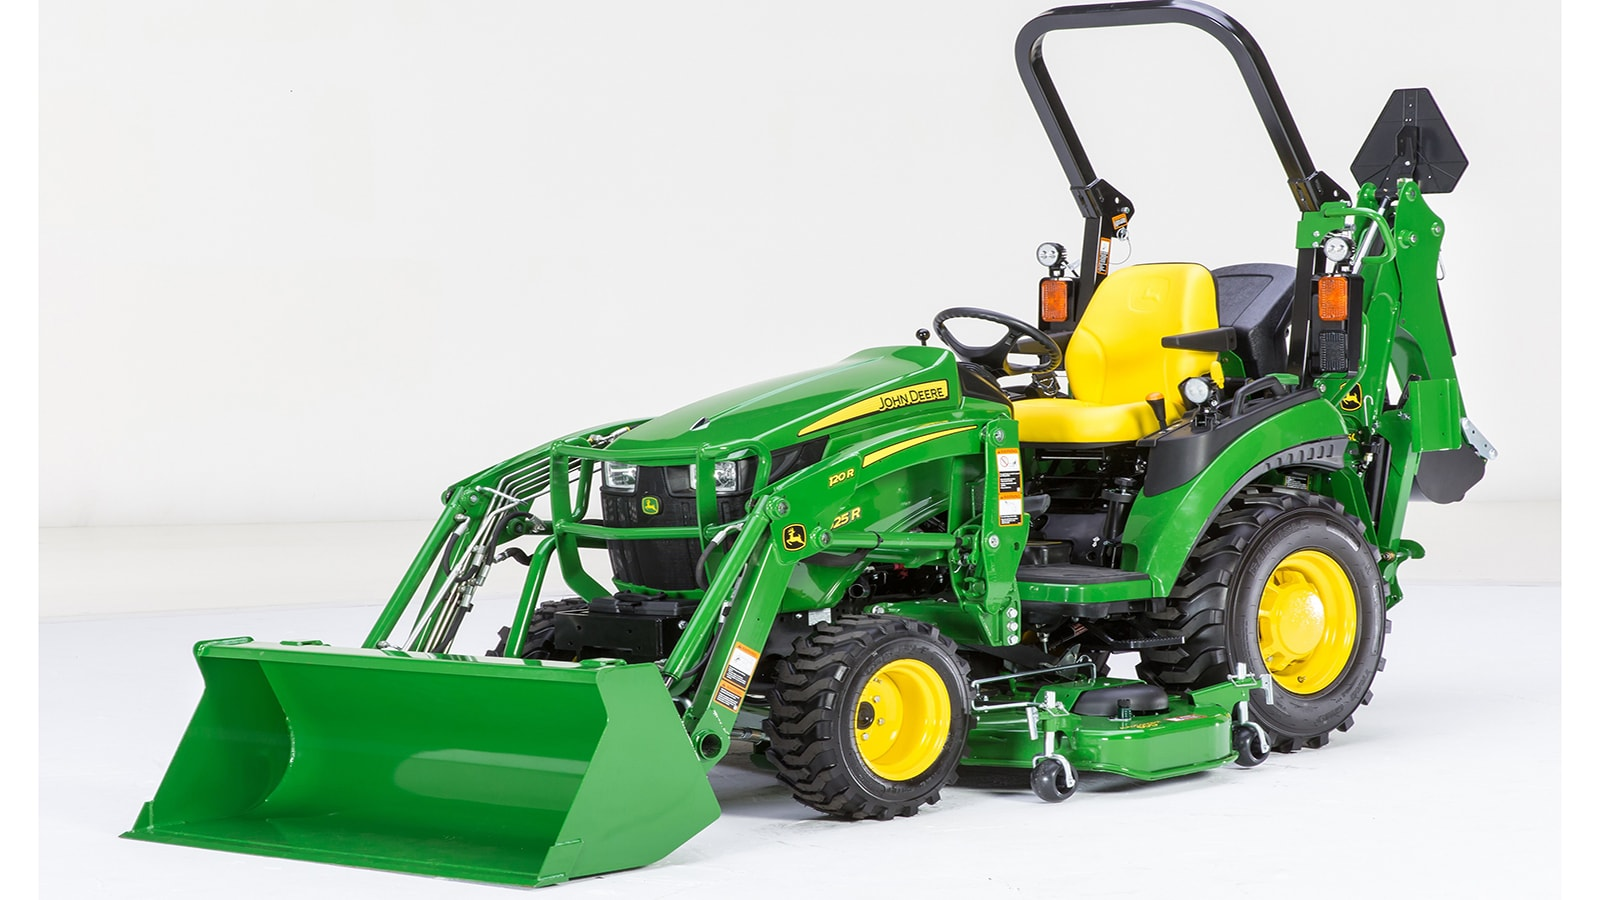 Redesigned 2025R provides increased comfort and versatility